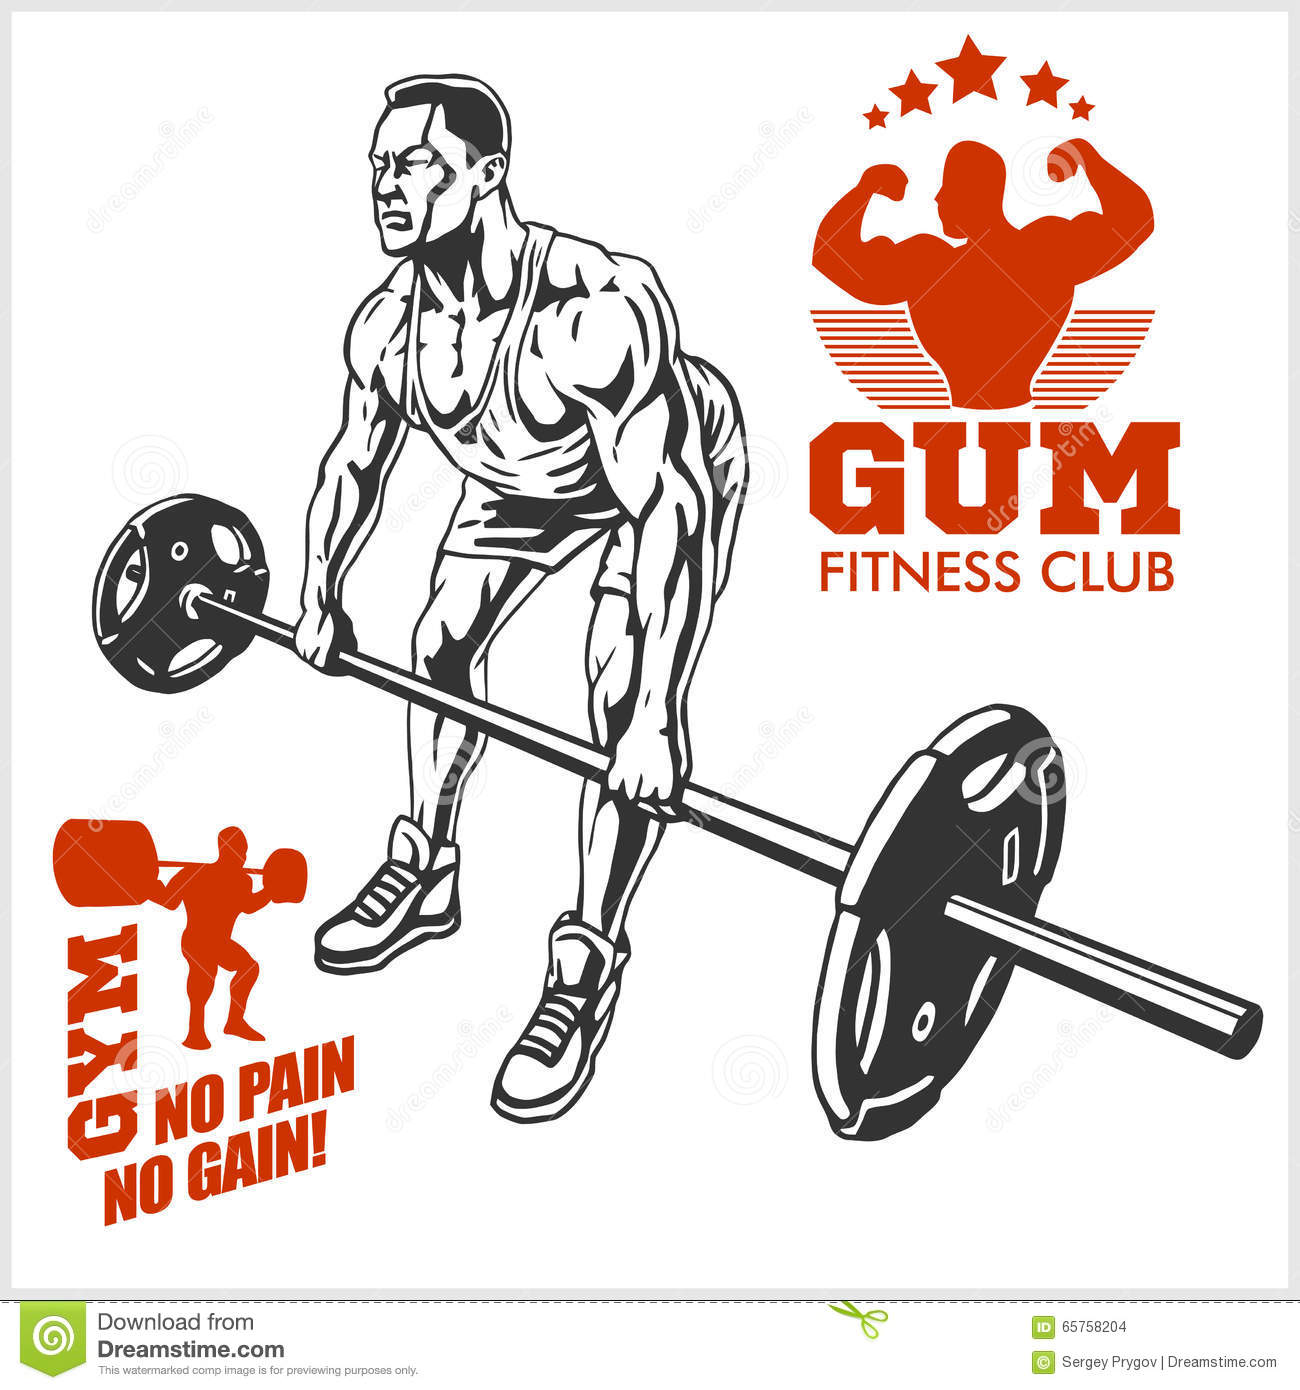 Bodybuilder and bodybuilding fitness logos emblems sports